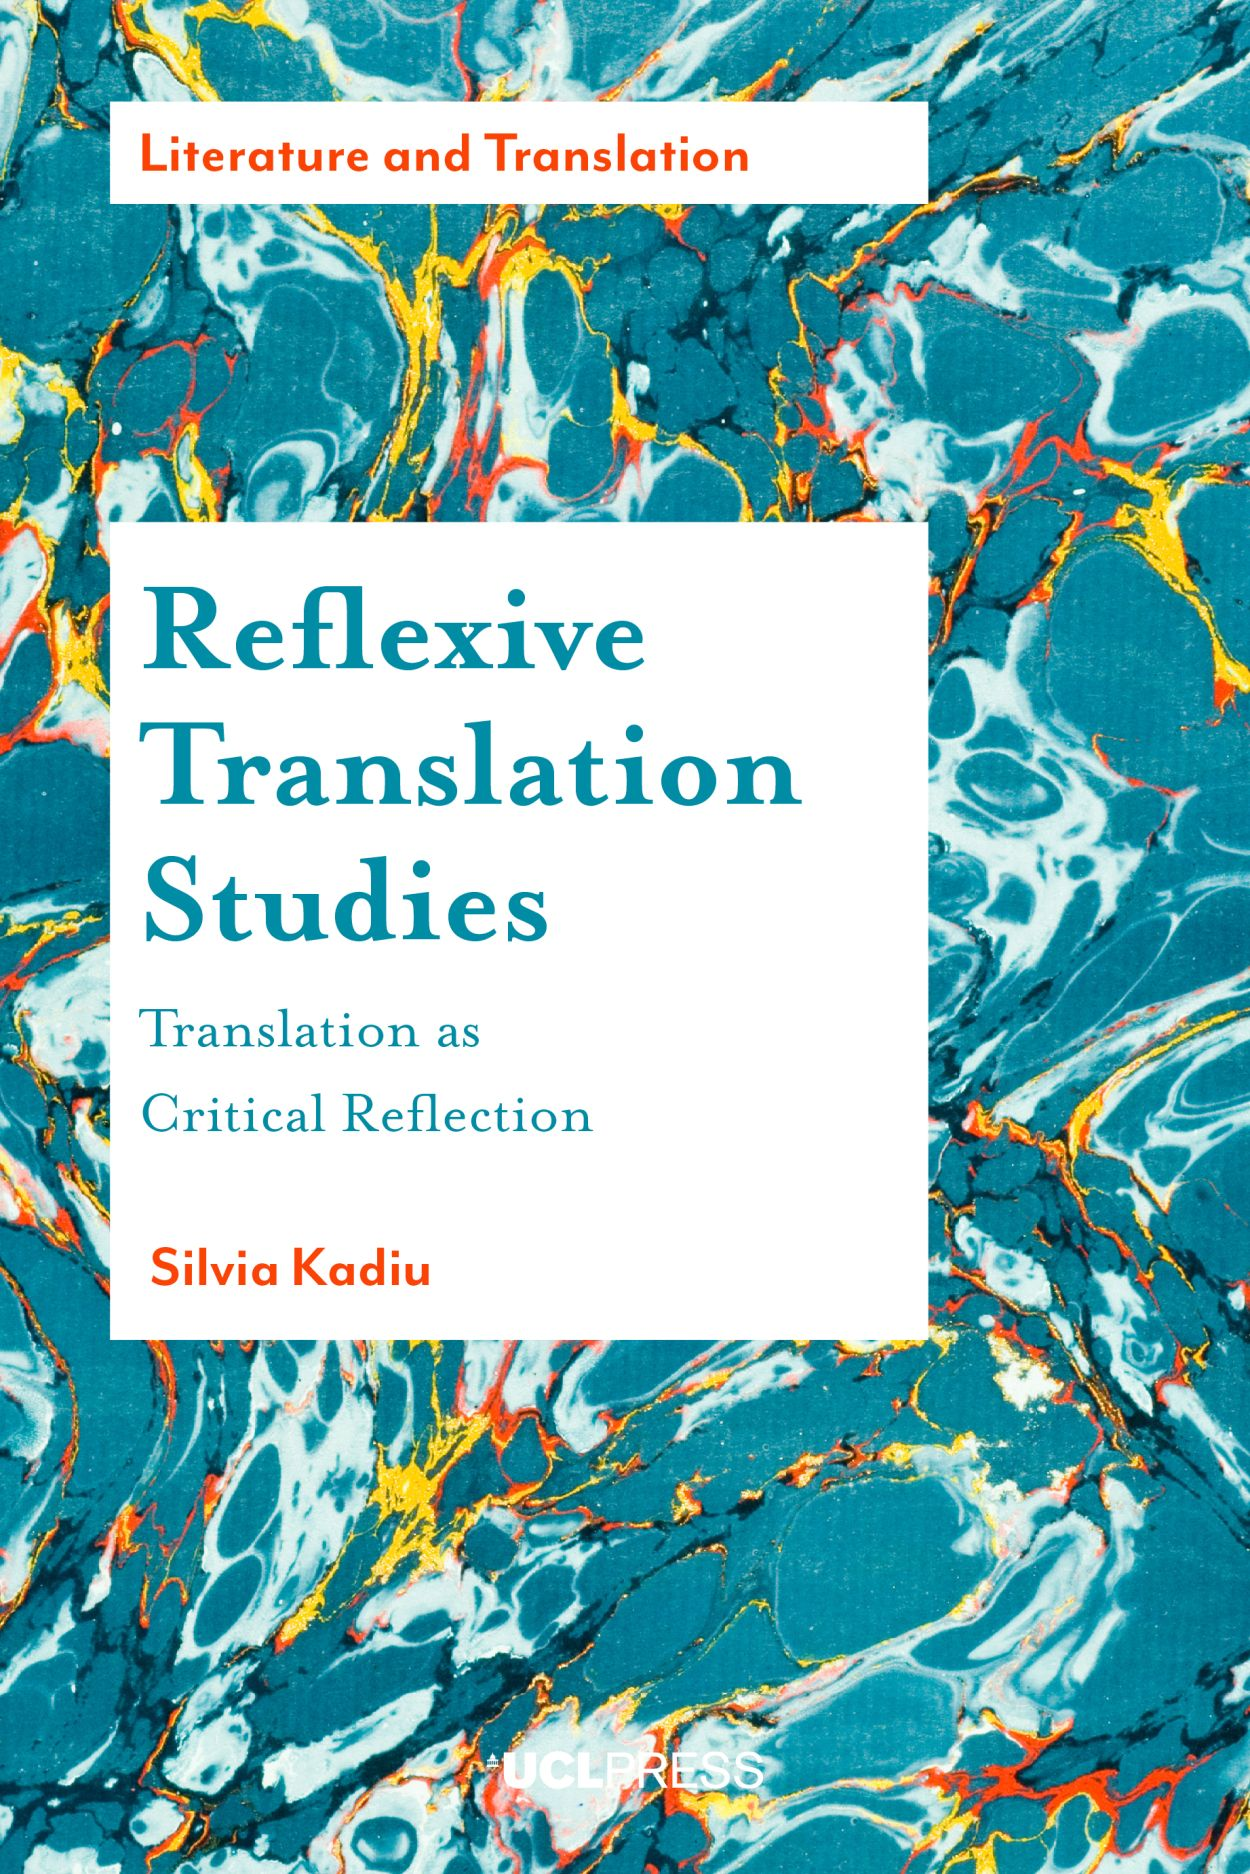 Reflexive Translation Studies: Translation as Critical Reflection